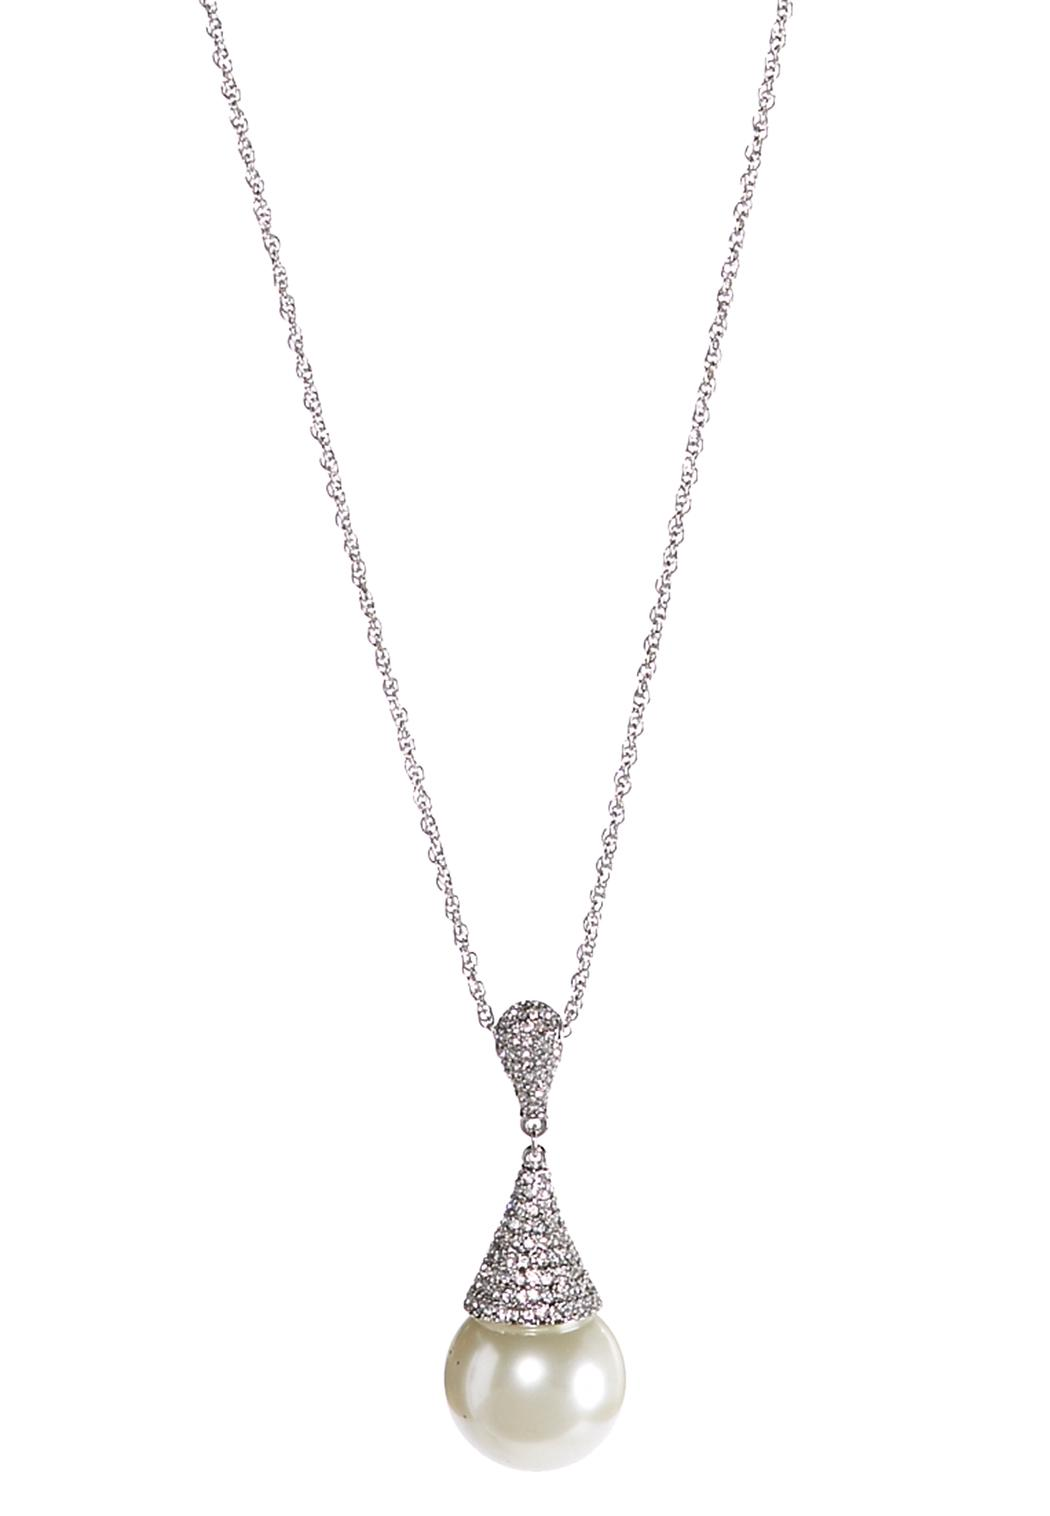 Large Pave Pearl Pendant Necklace